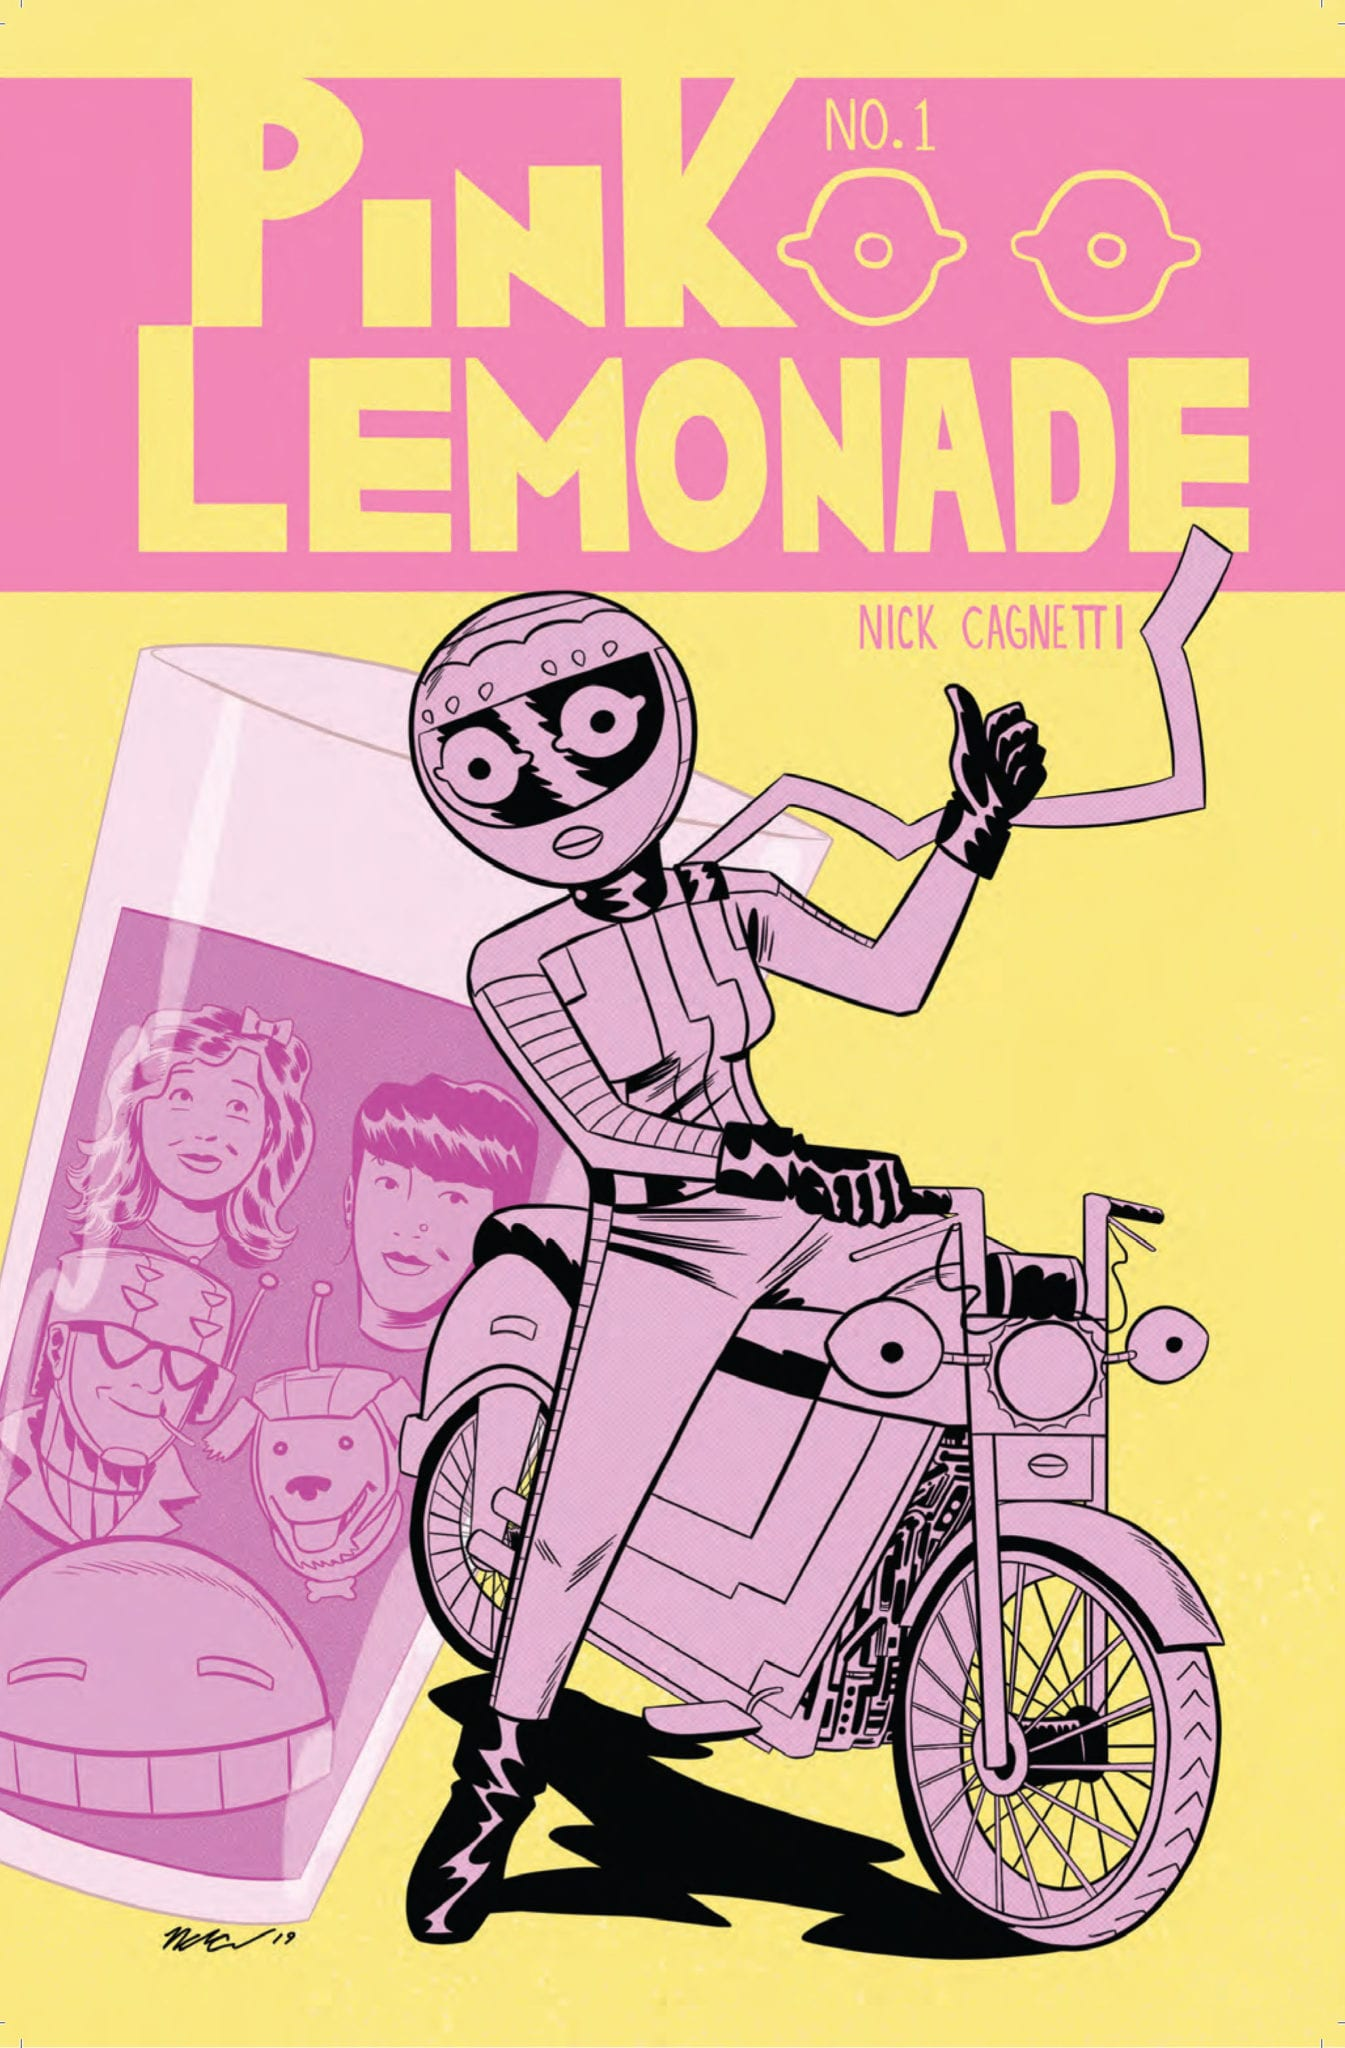 PINK LEMONADE # 1 COVER